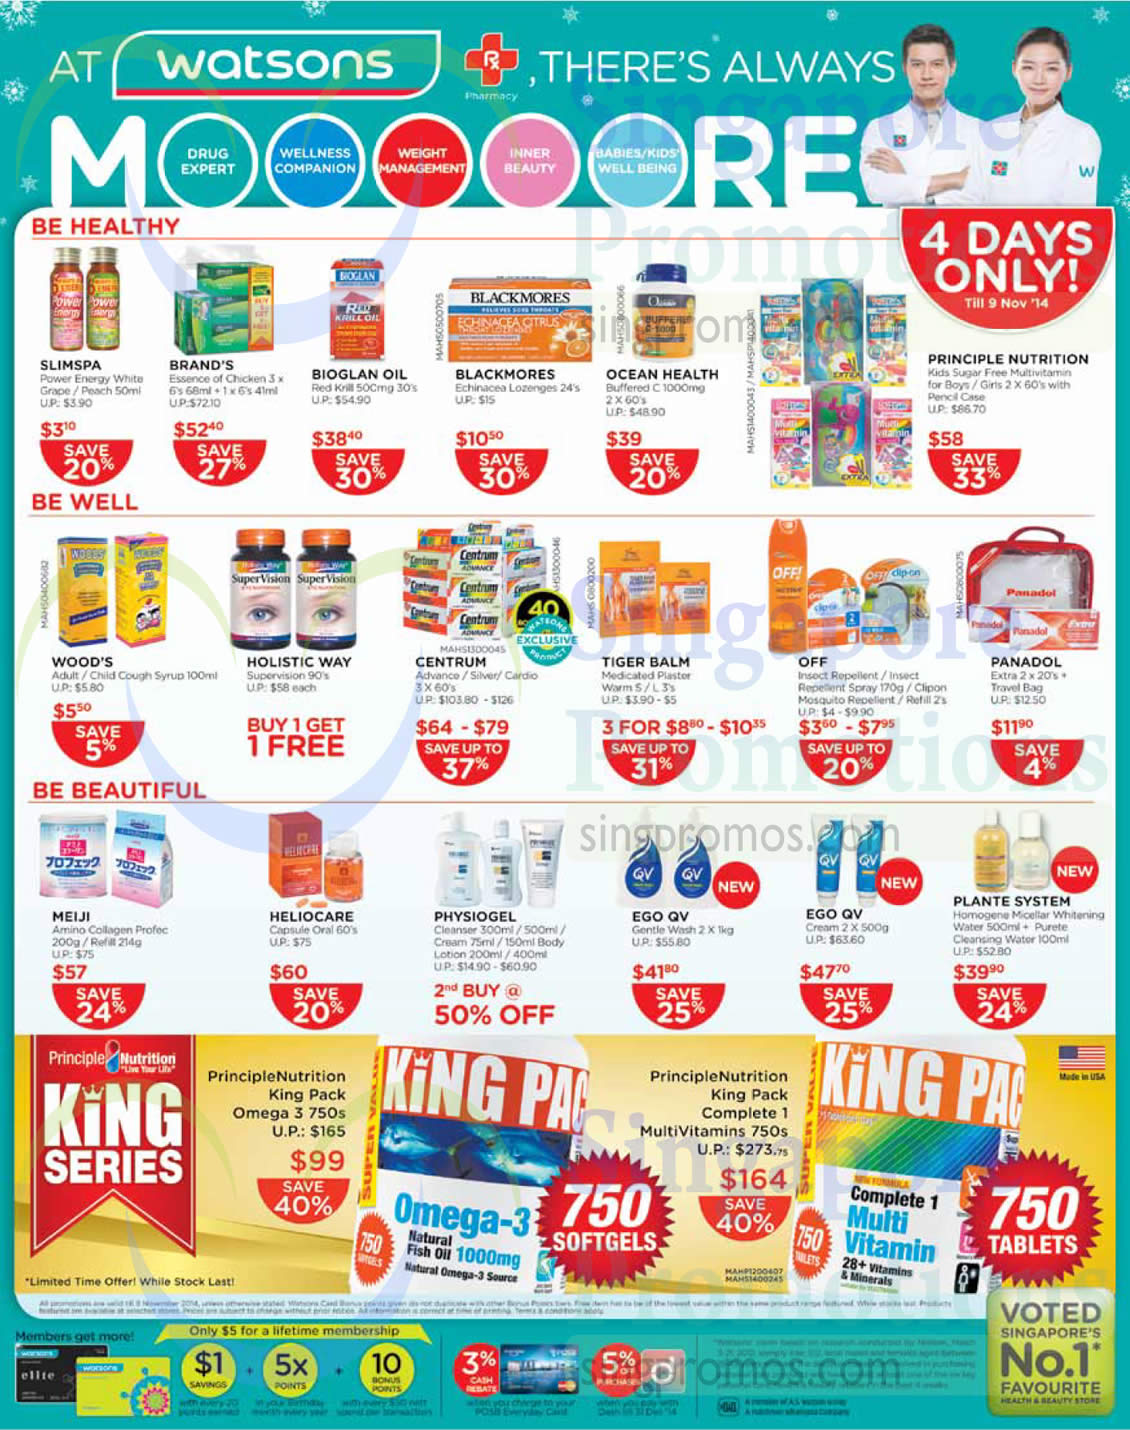 Supplements, Personalcare, Skin Care Products, Slimspa, Candy Kitten, Toni And Guy, Phyto, QV, Cetaphil, Himalaya, Brands, Lambertz